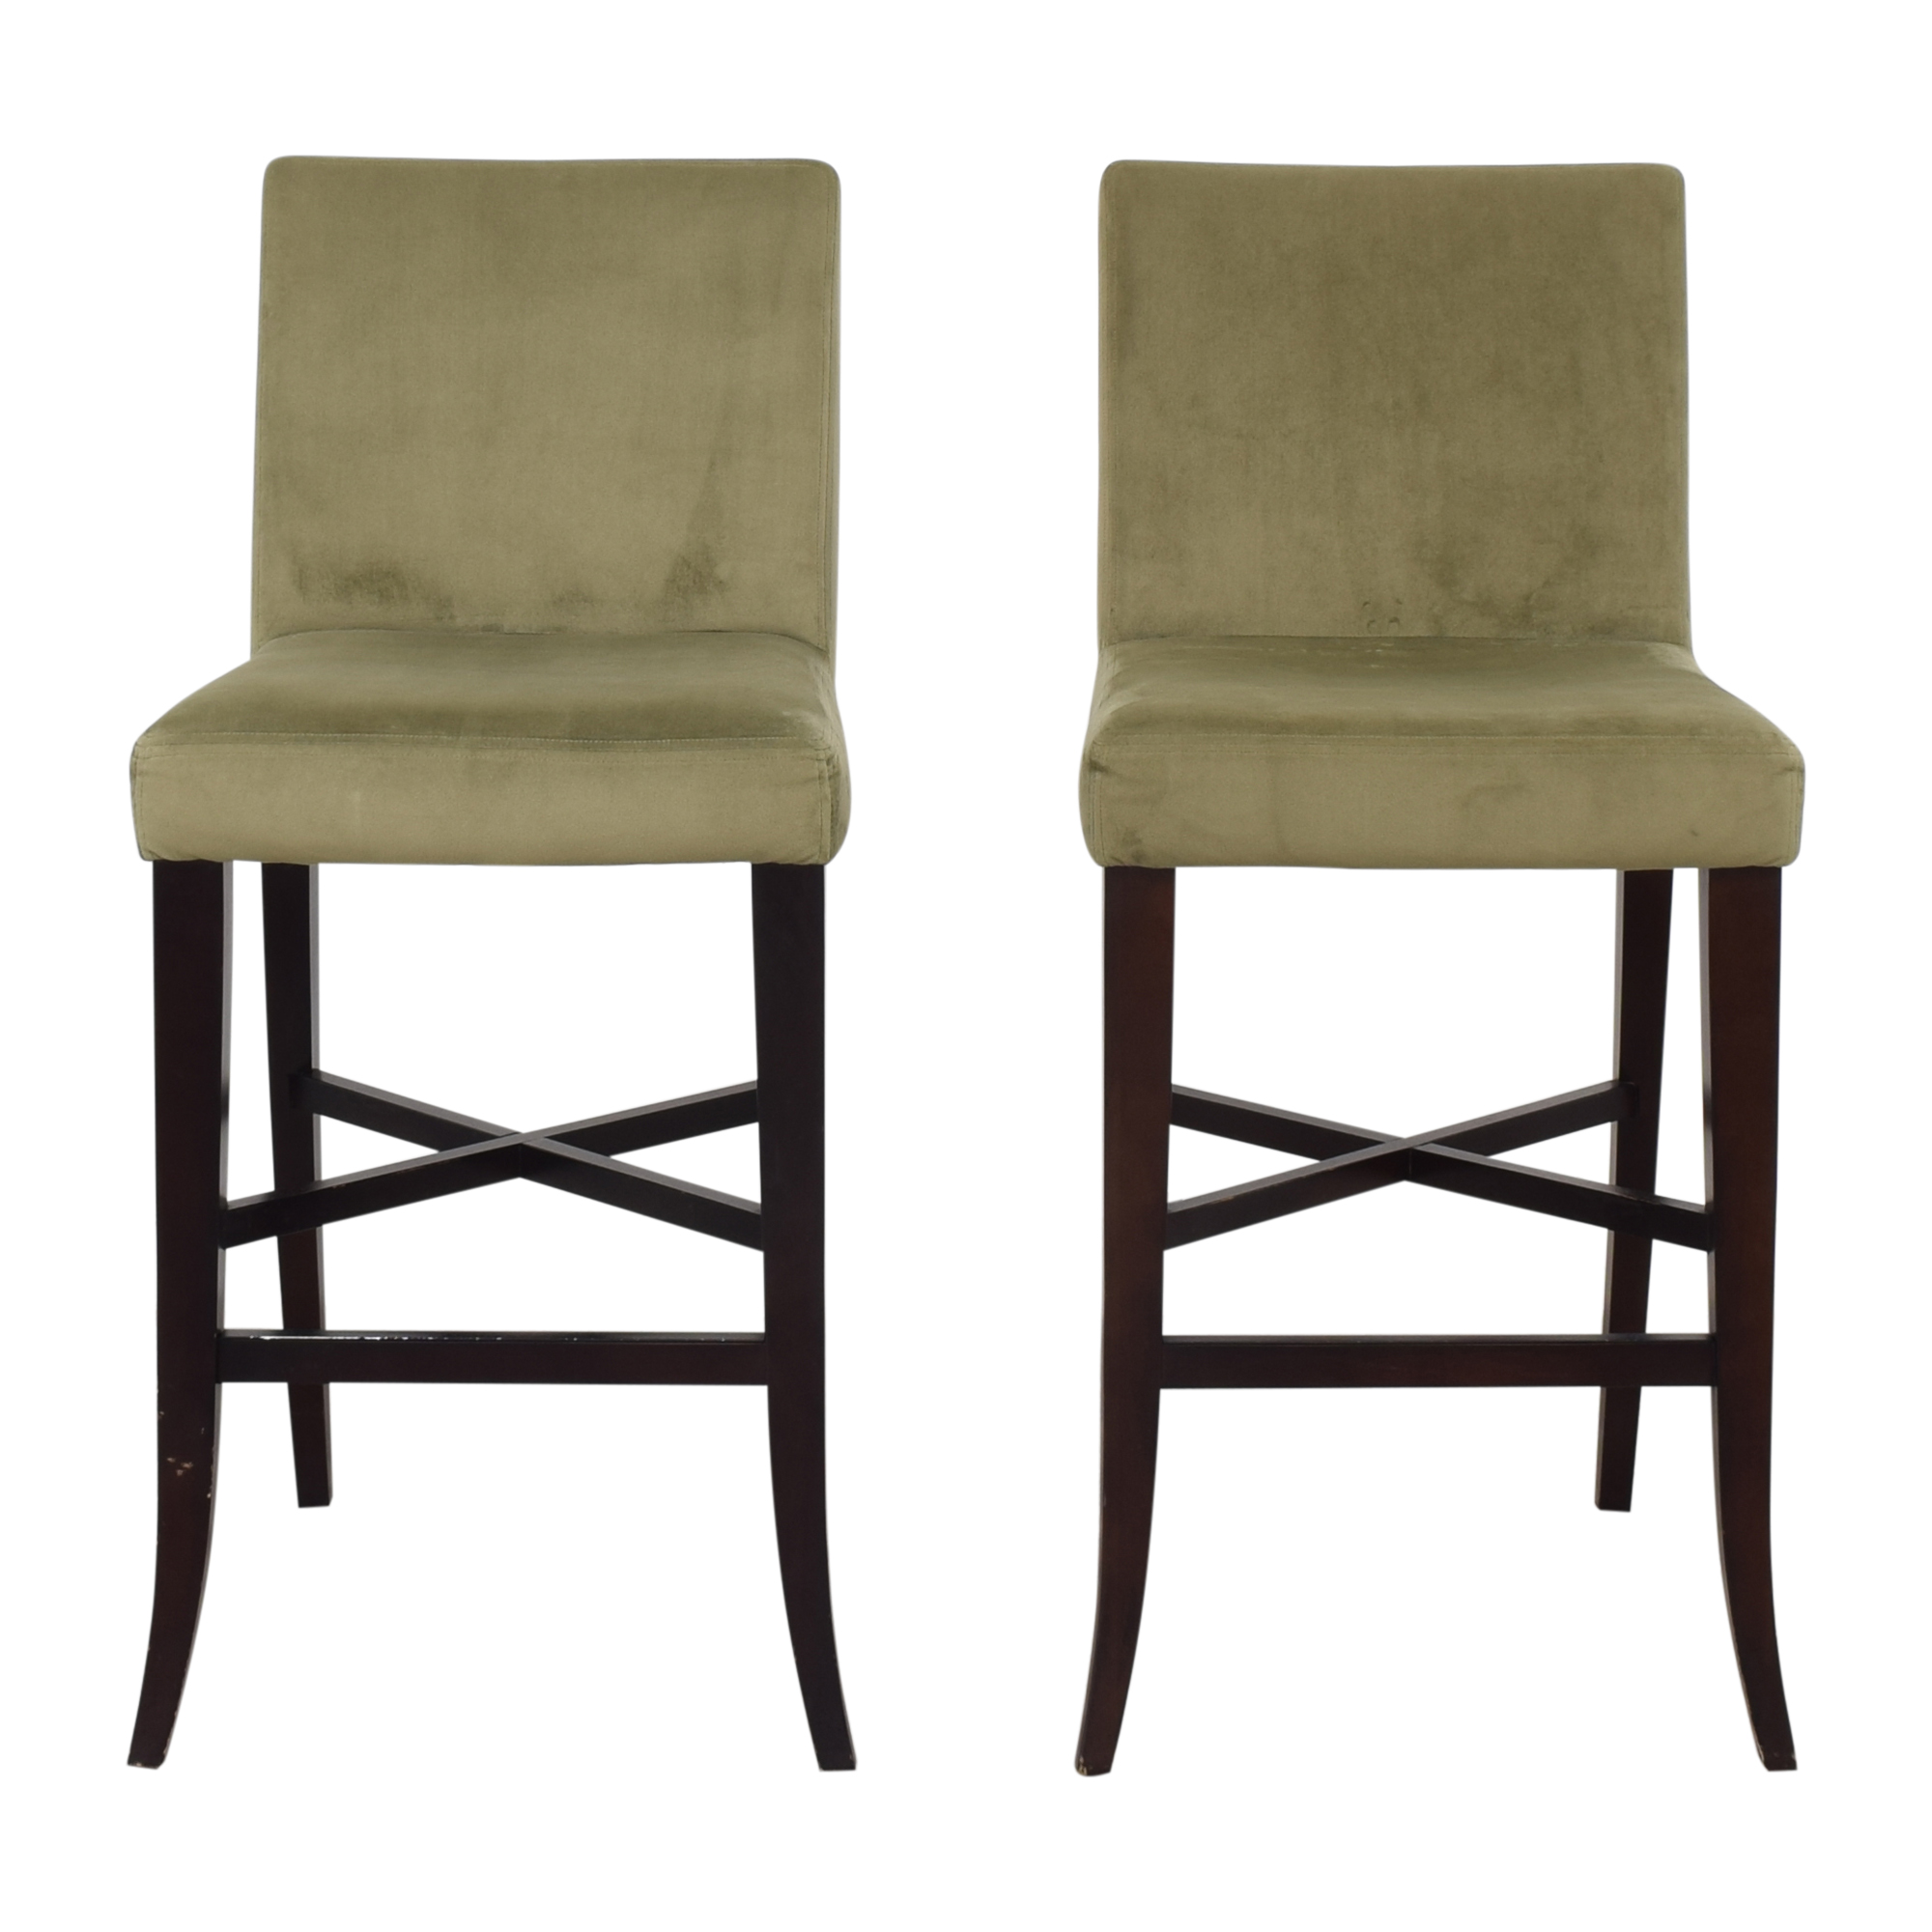 Crate & Barrel Crate & Barrel Upholstered Bar Stools coupon